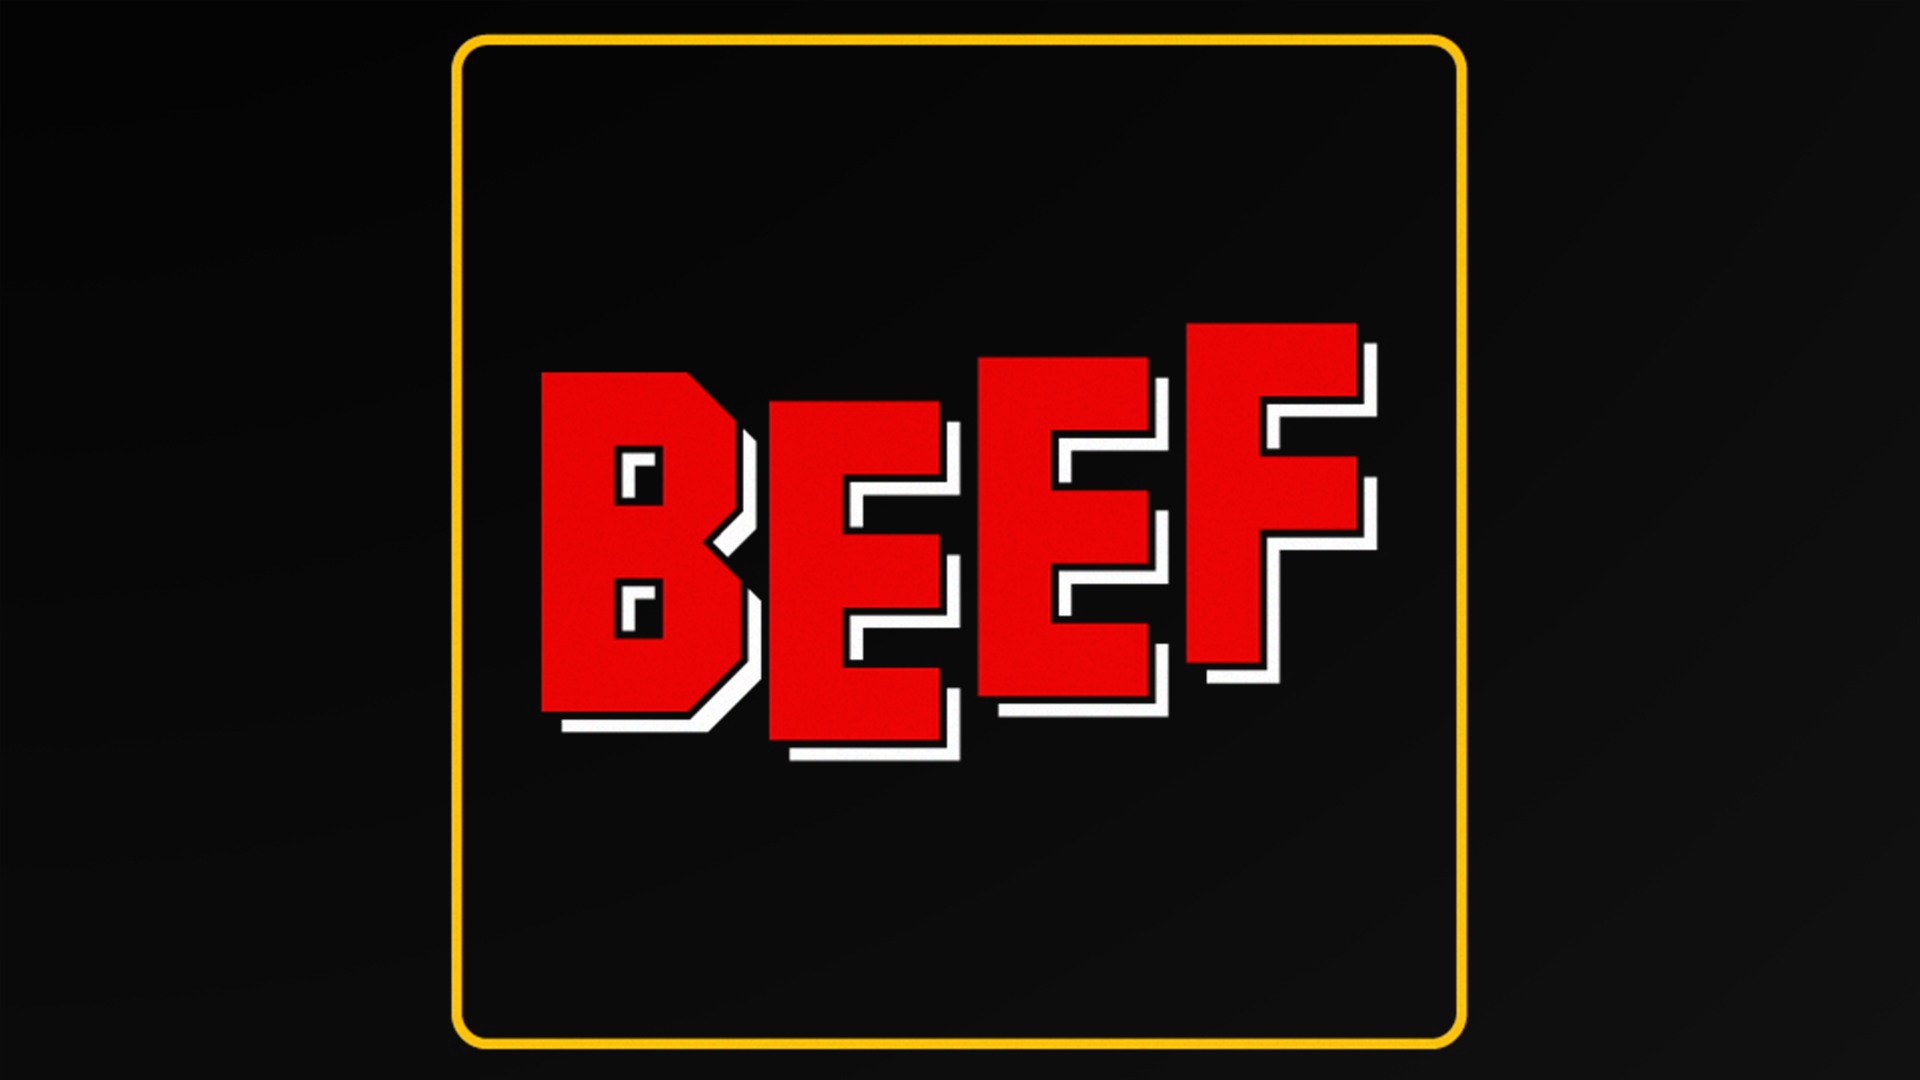 Icon for Welcome to Beef City